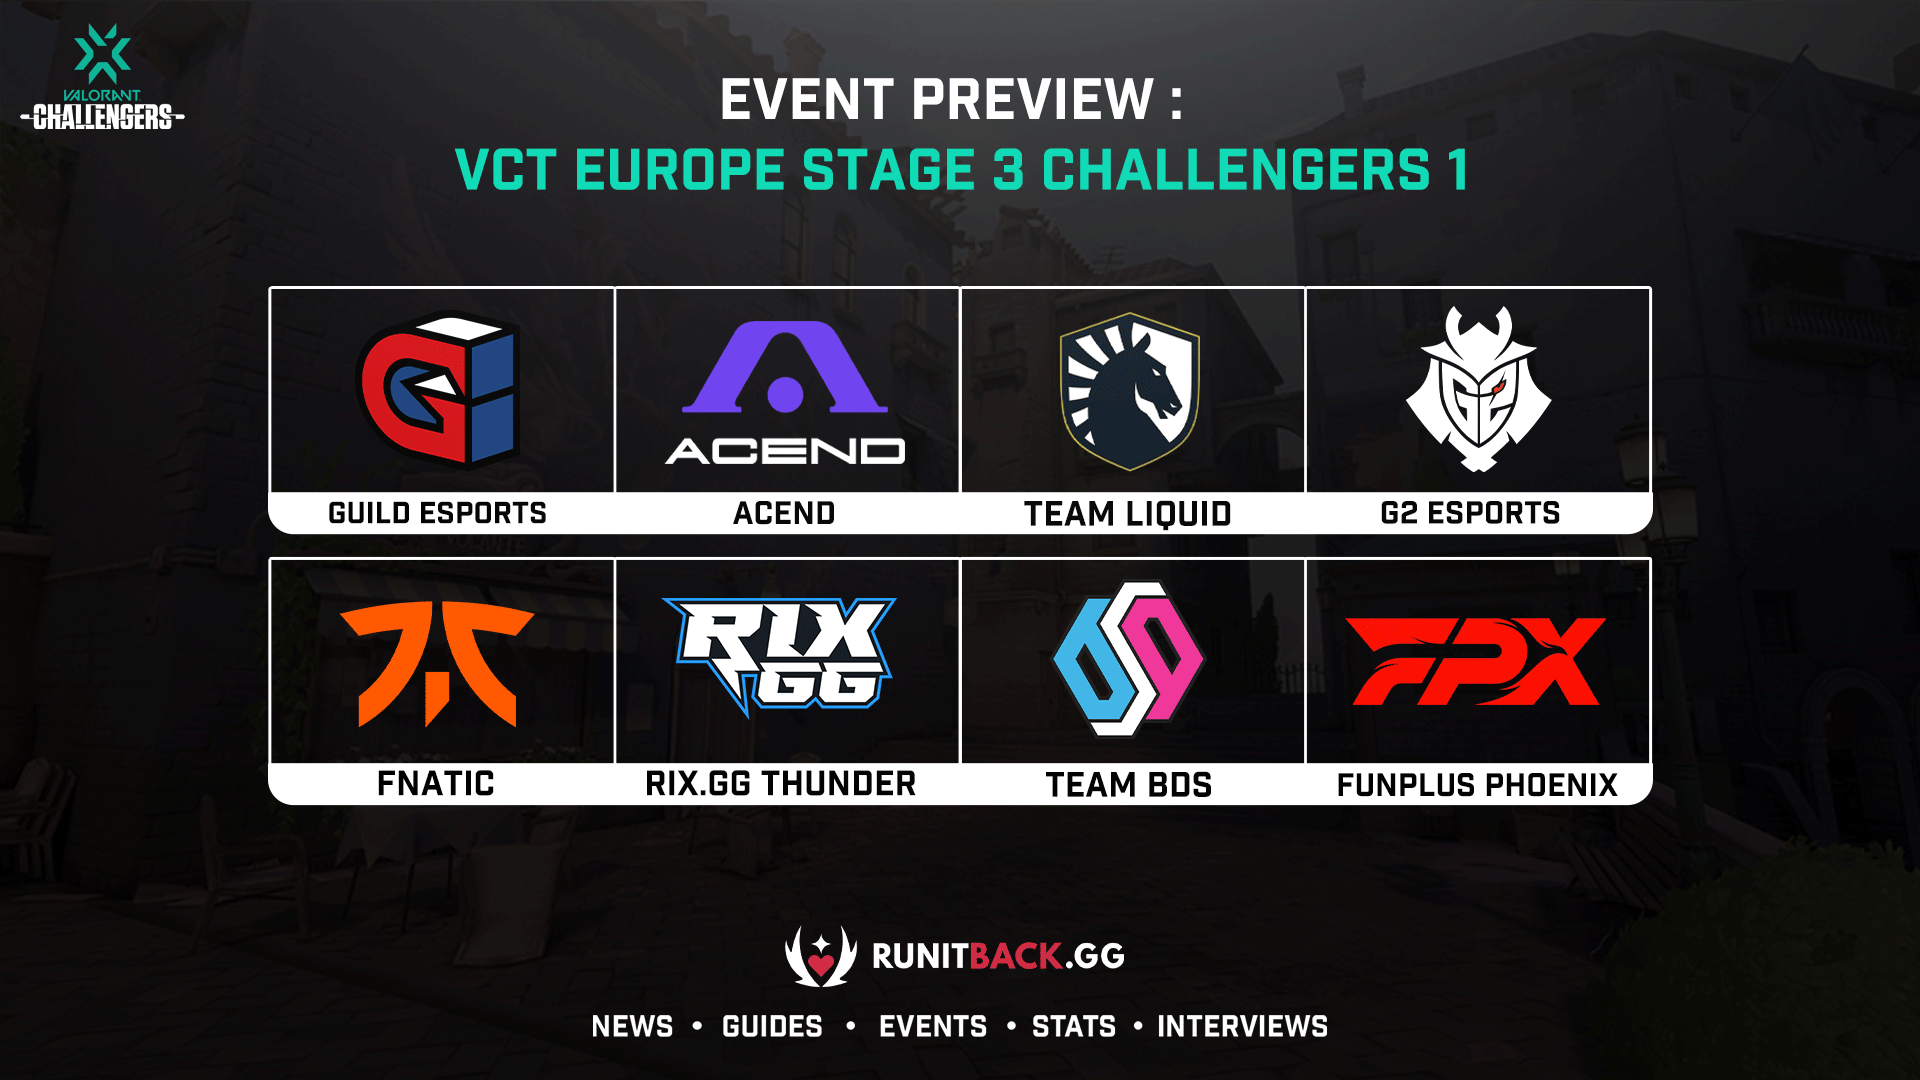 VCT Europe Stage 3 Challengers 1 Main Event Preview: Who Will Get Closer to Masters Berlin?